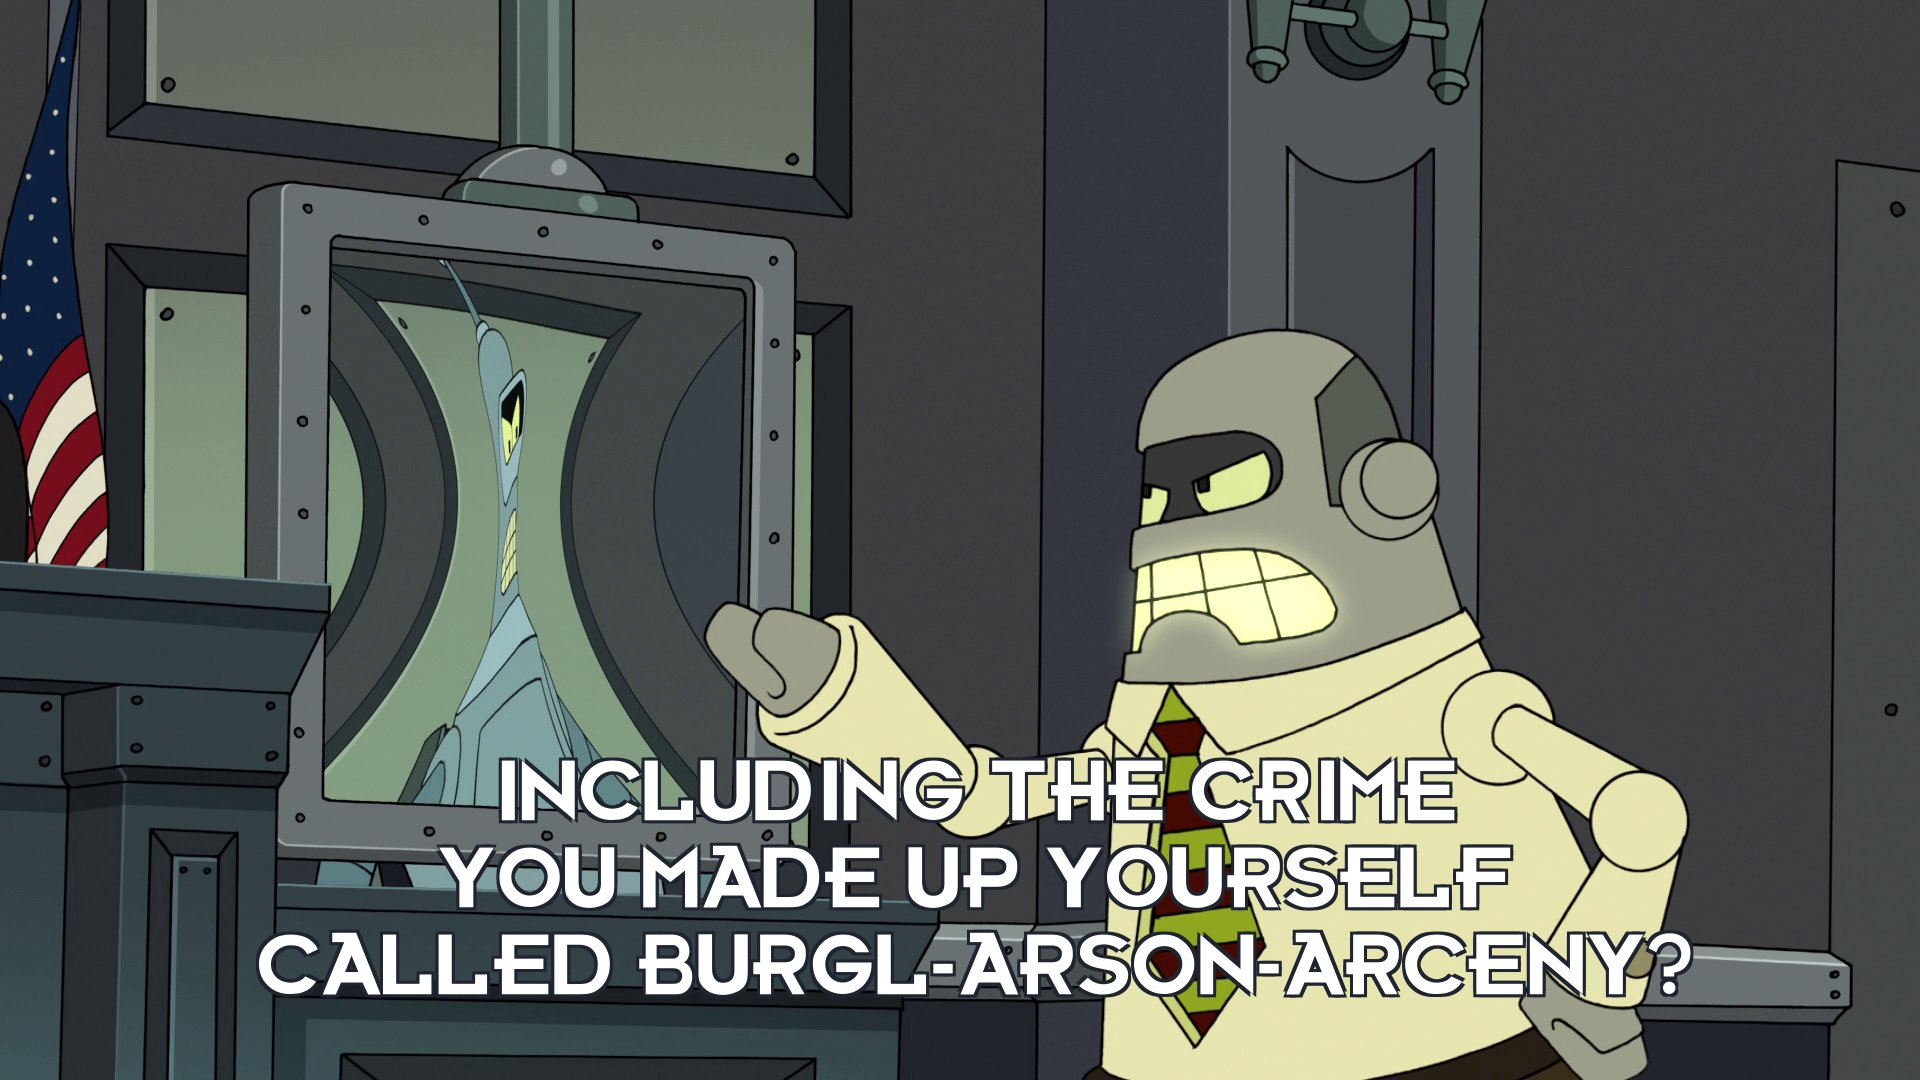 Lawyer: Including the crime you made up yourself called burgl-arson-arceny?